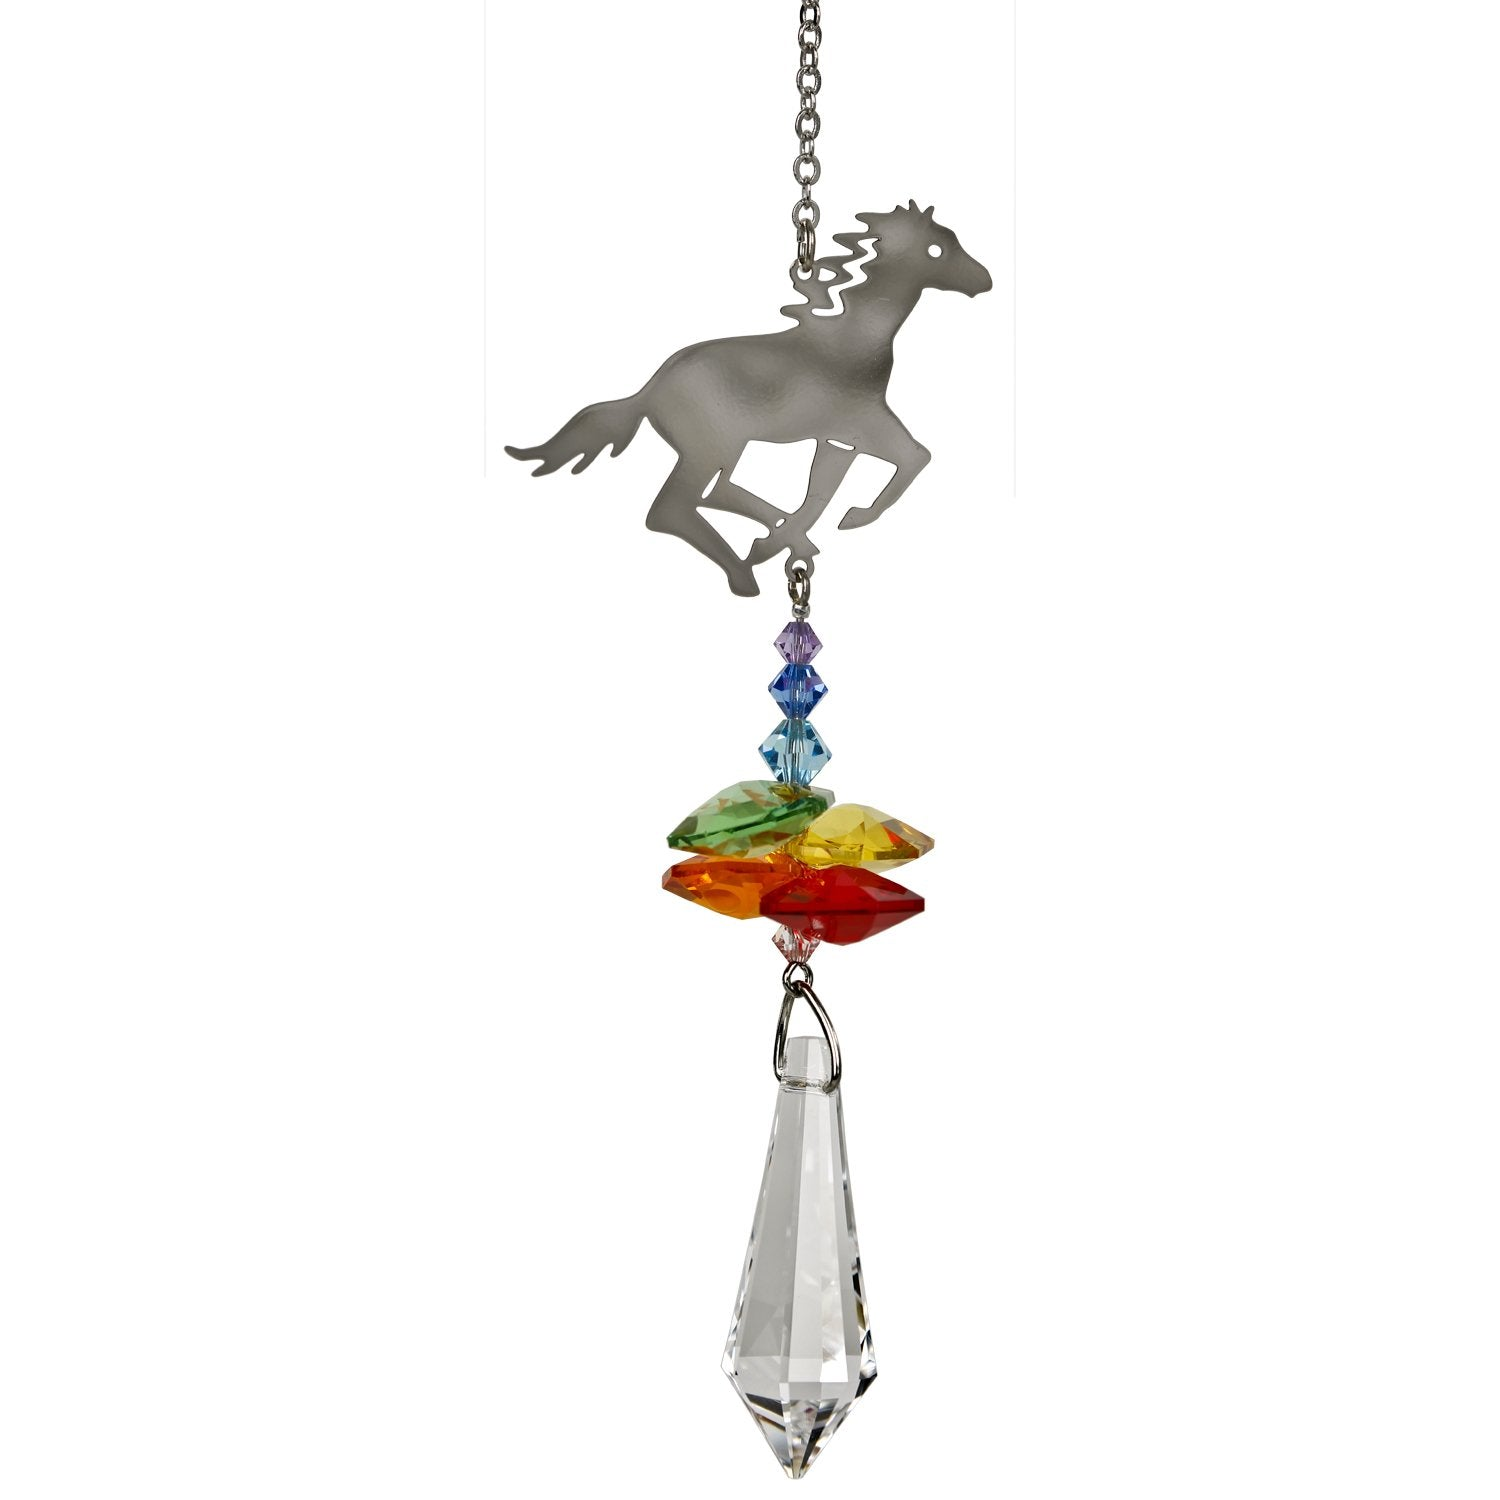 Crystal Fantasy Suncatcher - Horse alternate product image